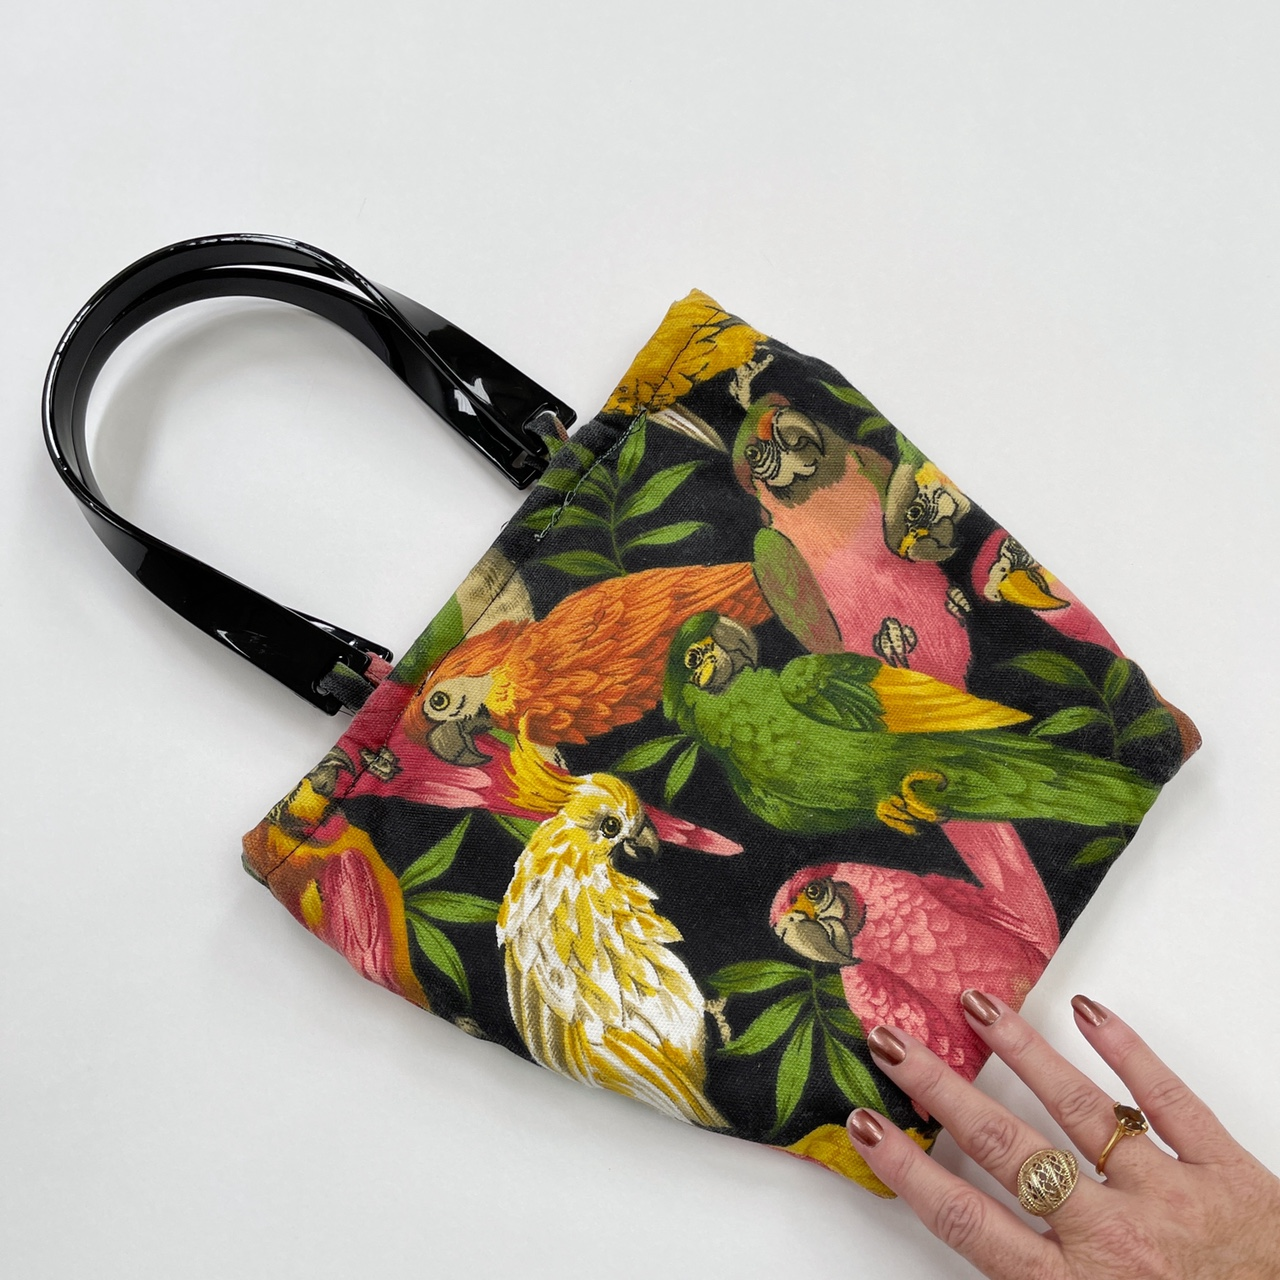 Product Image 1 - Handmade tropical parrot bag with